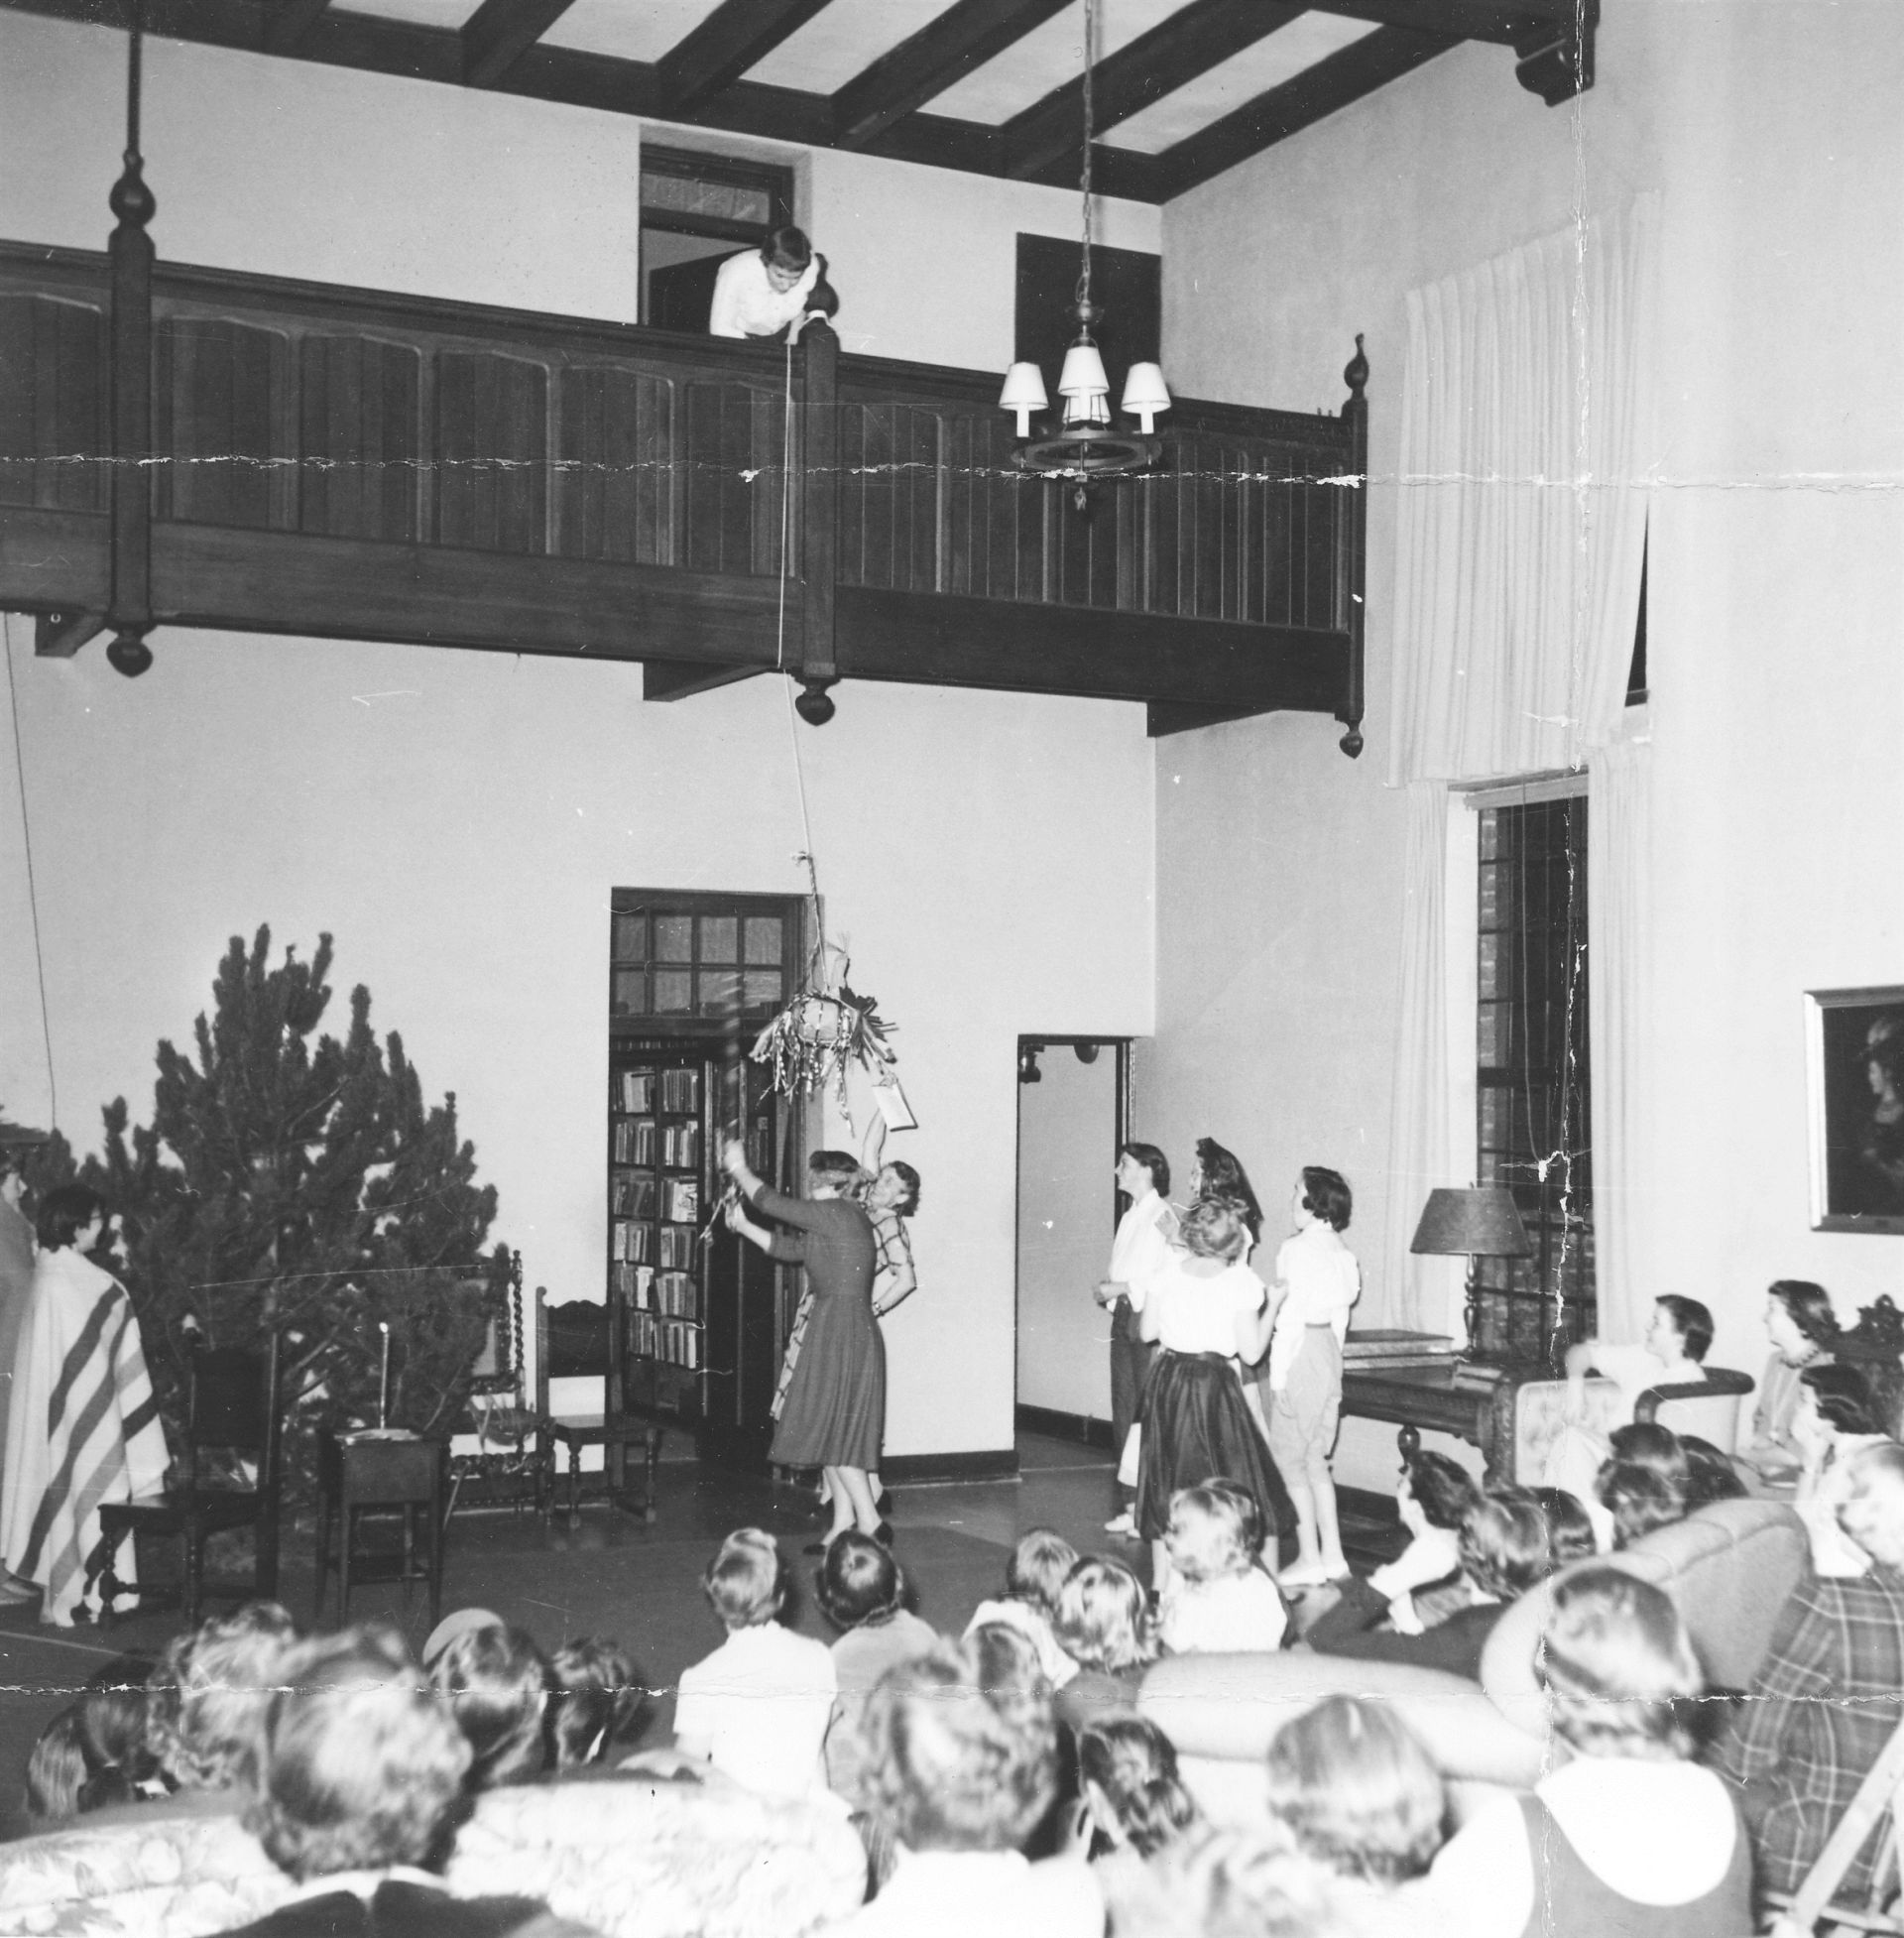 Xmas in the Great Hall in 1956